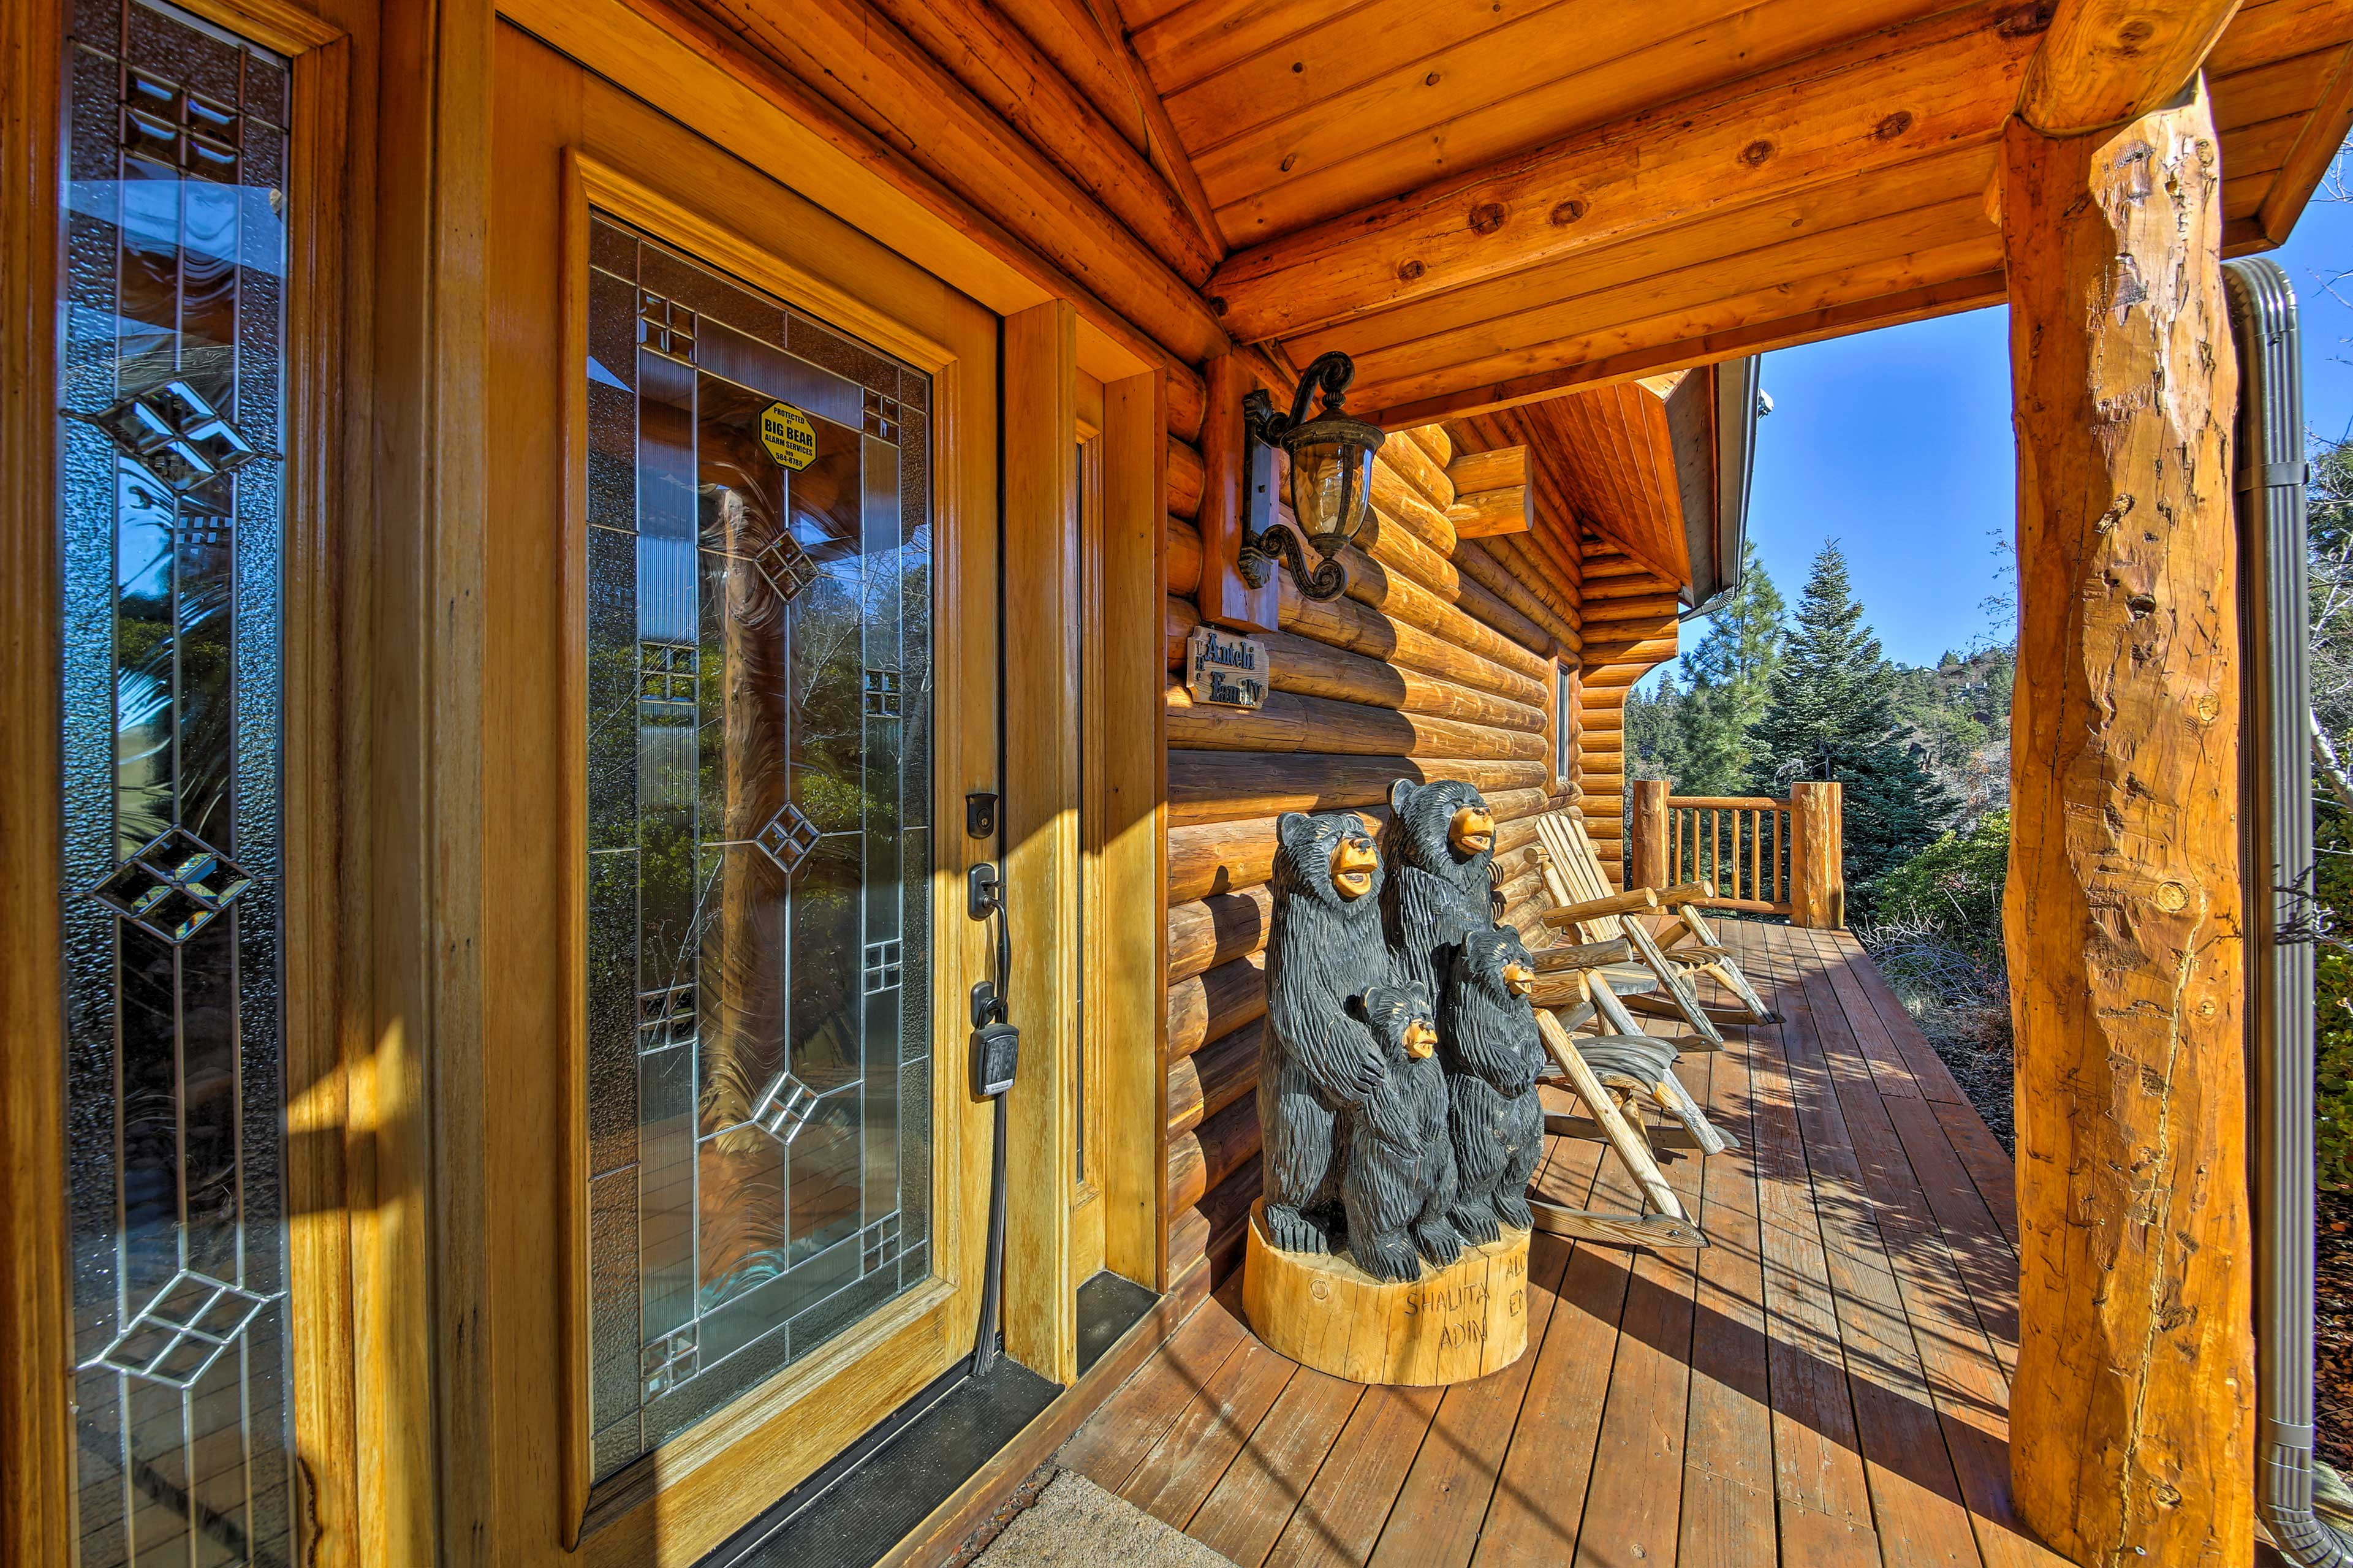 The property is a welcome rustic retreat.